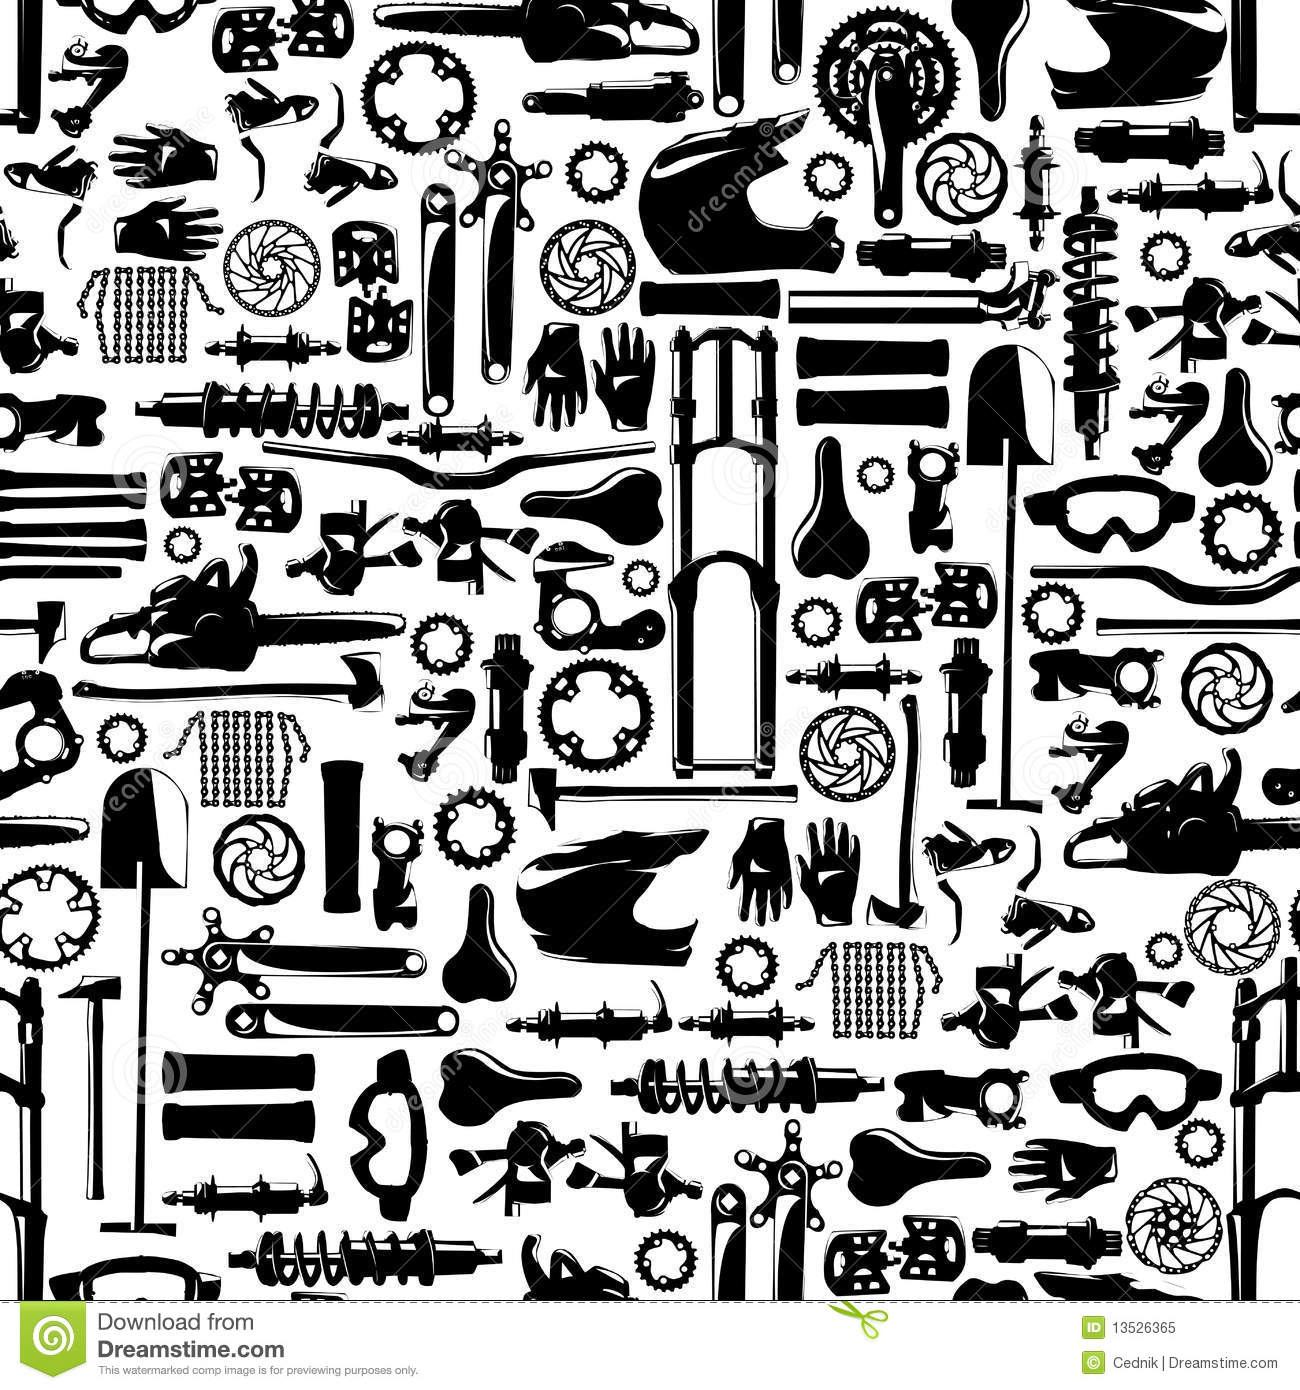 big-bike-part-vector-colletion-seamless-pattern-13526365